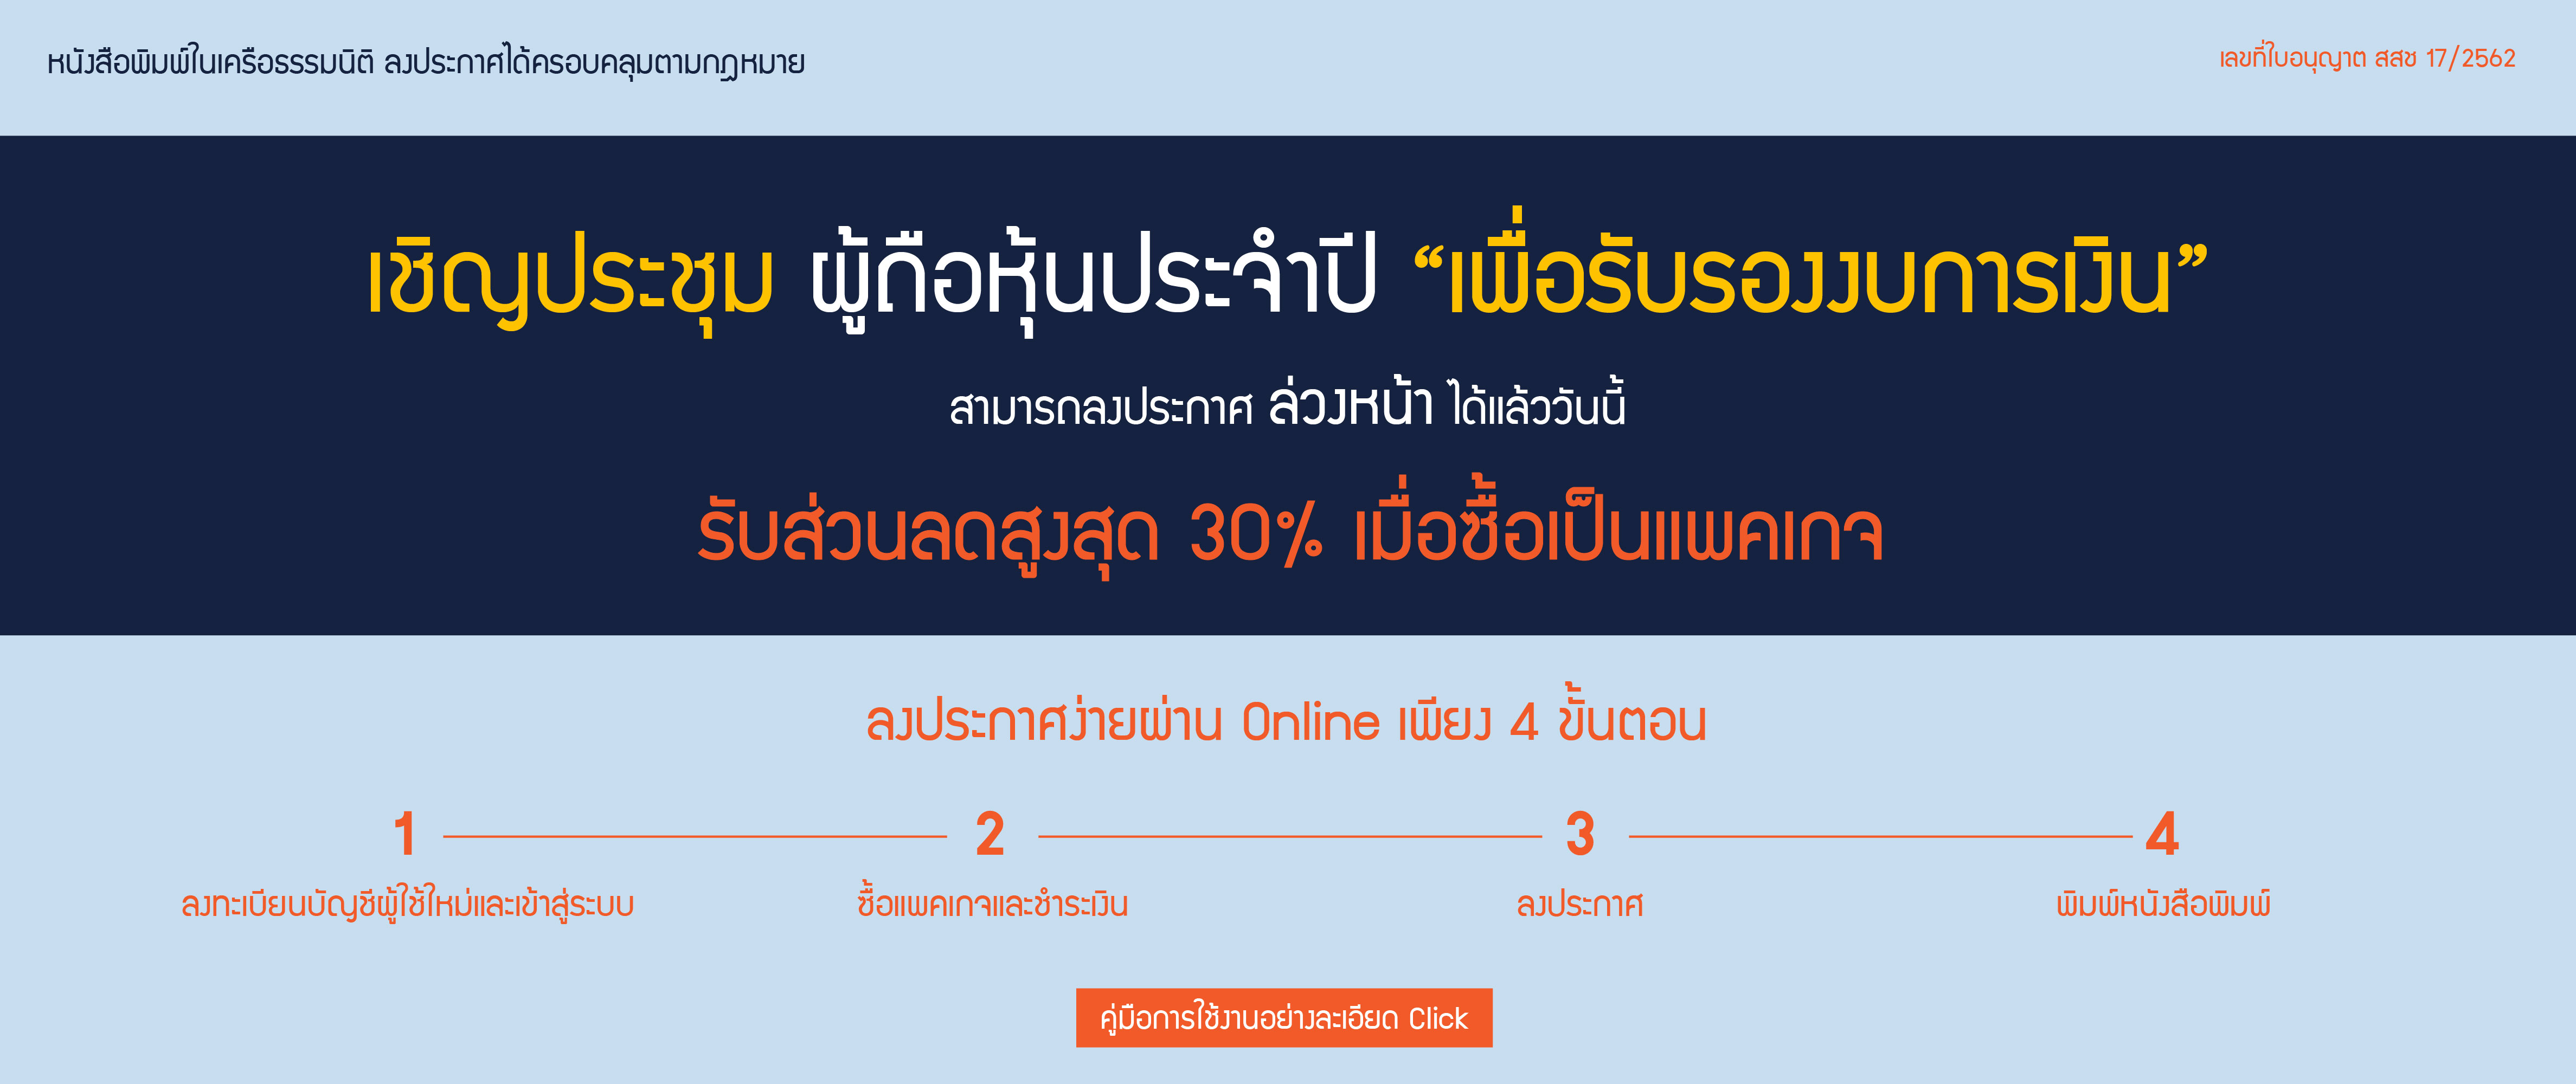 Ads Promotion Page 01